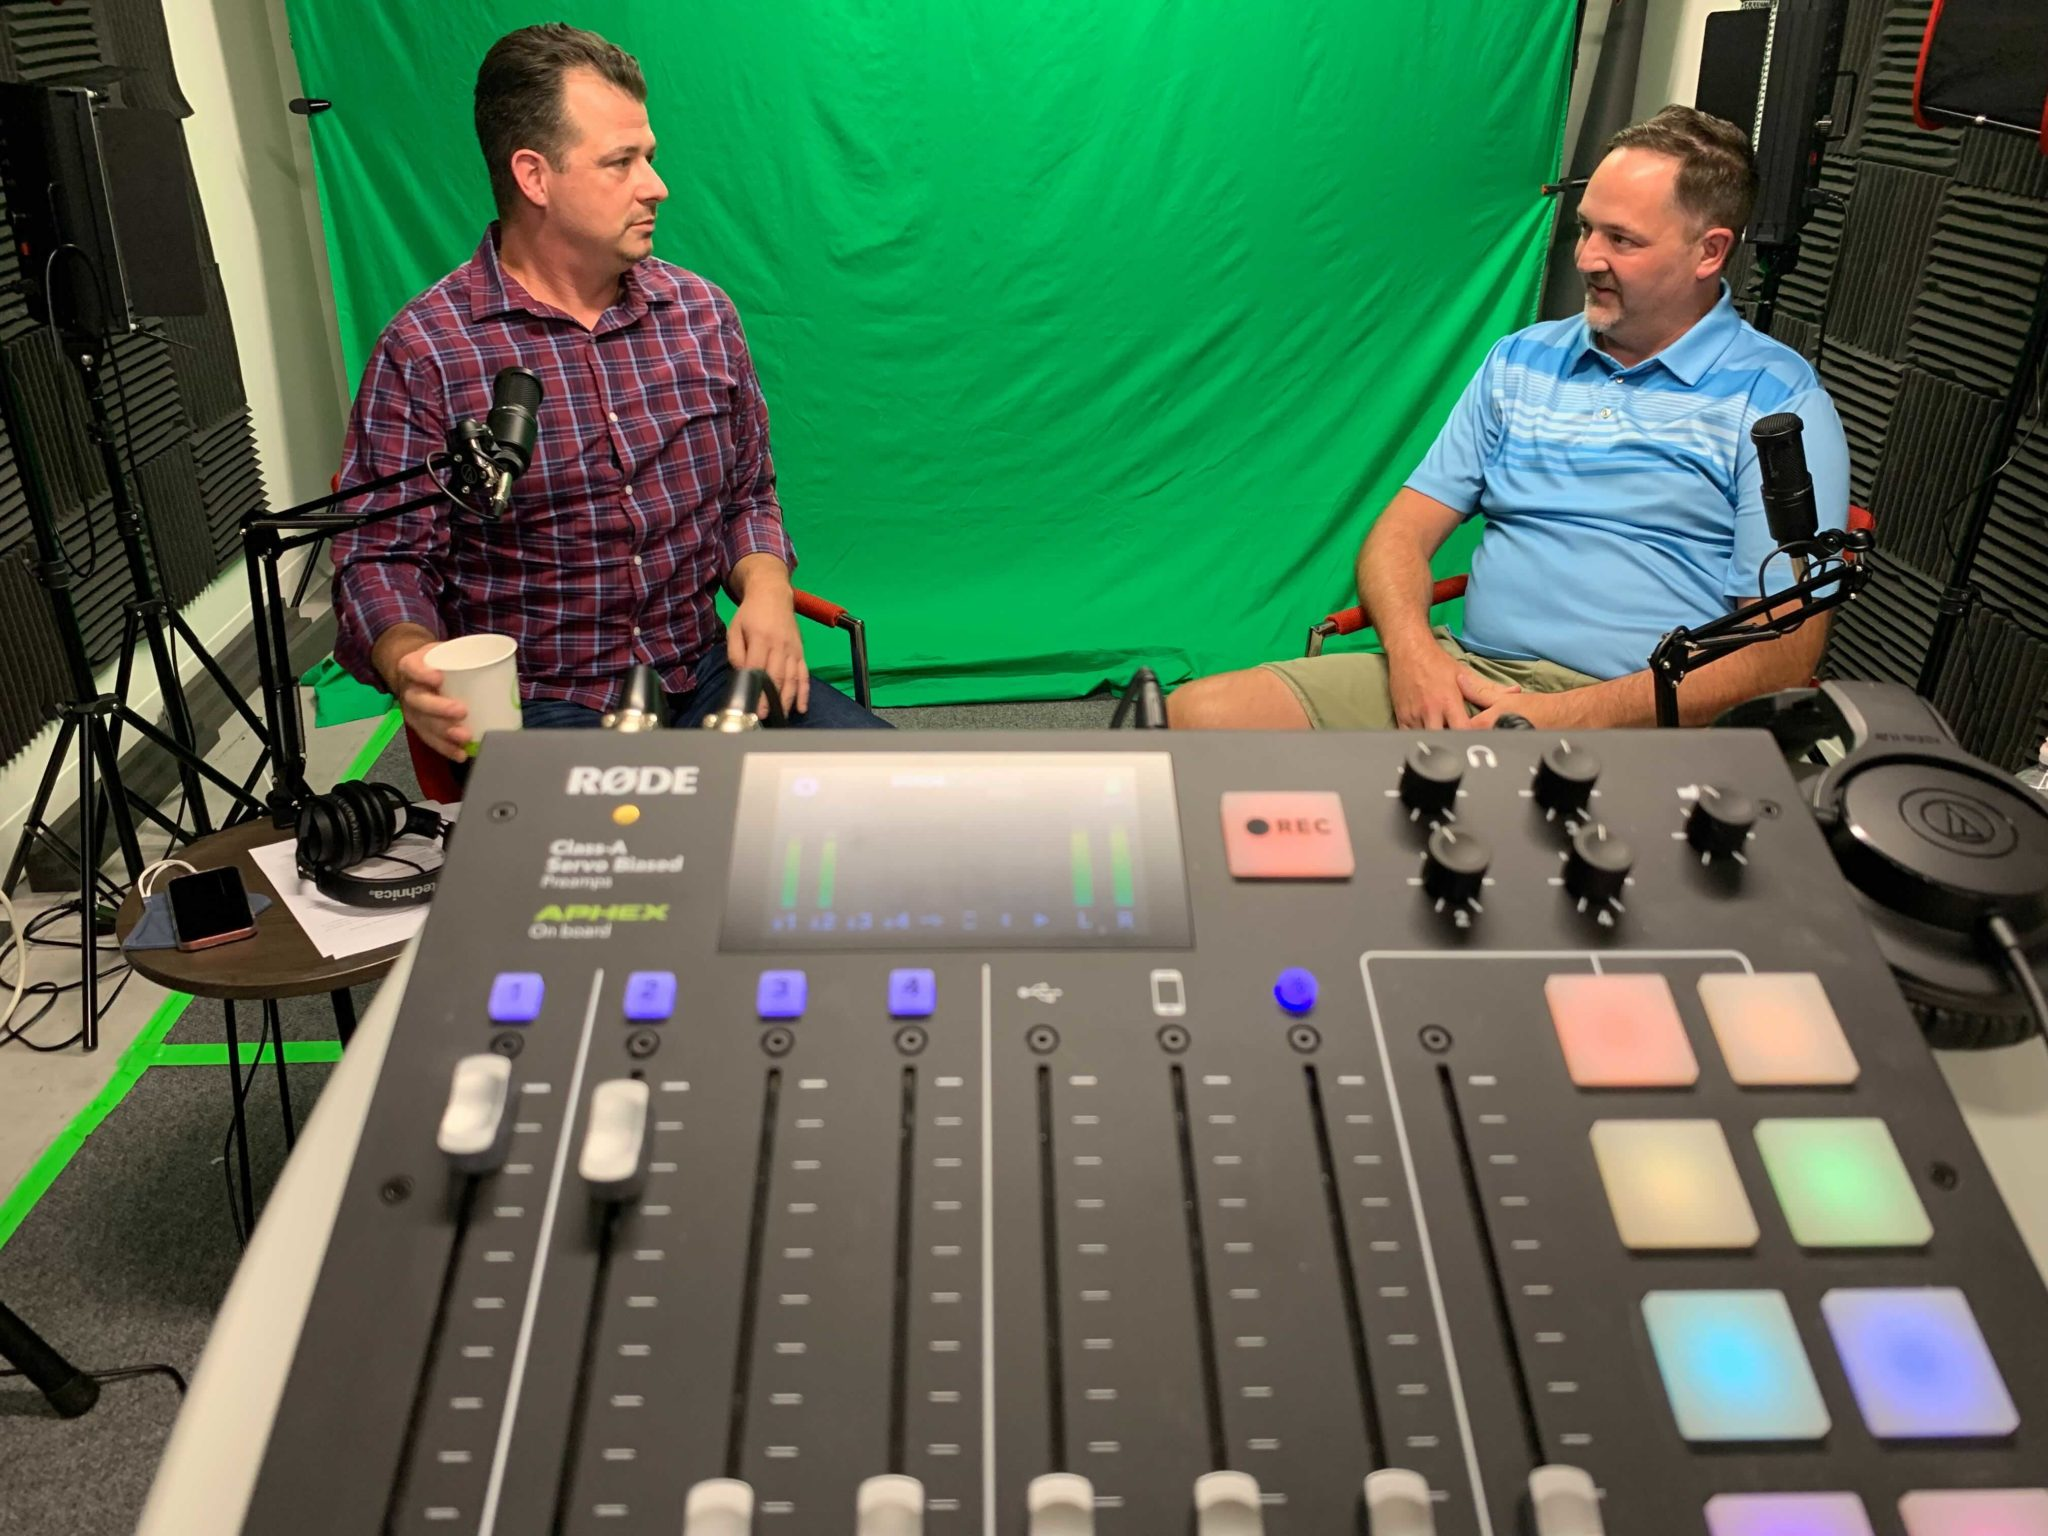 In the foreground sits a Rode podcast recorder, with guests Jason Ward and Scott Sendelweck in front of a green screen. Jason is white male in his 40's with brown hair, wearing a plaid button down shirt. Scott Sendelweck is also a white male in his 40's with brown hair and a goatee, wearing a blue striped polo and khaki shorts.